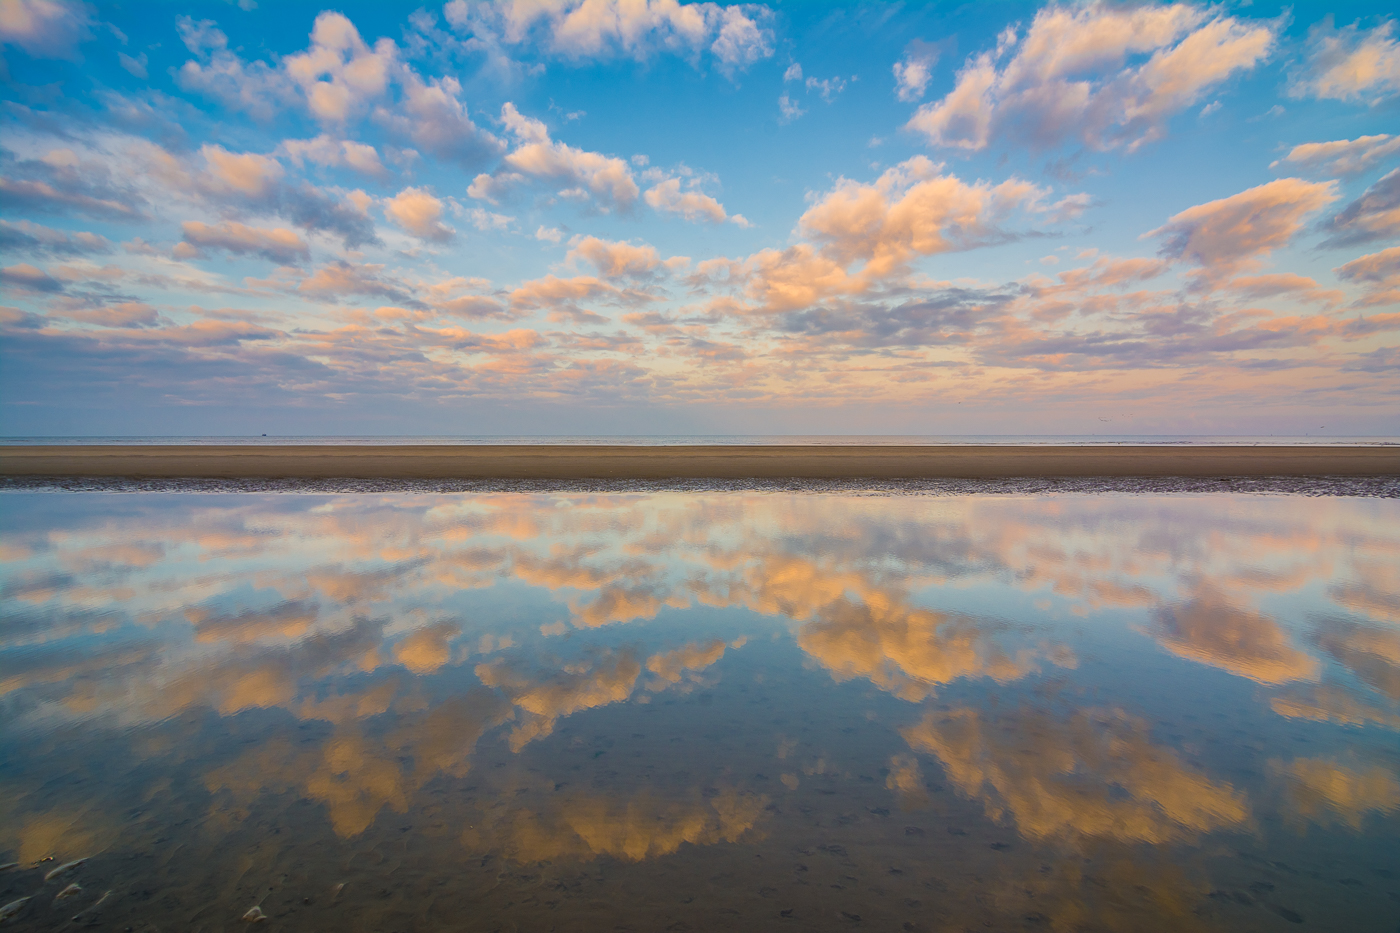 Wadden Sea in St. Peter Ording, Eiderstedt, Germany